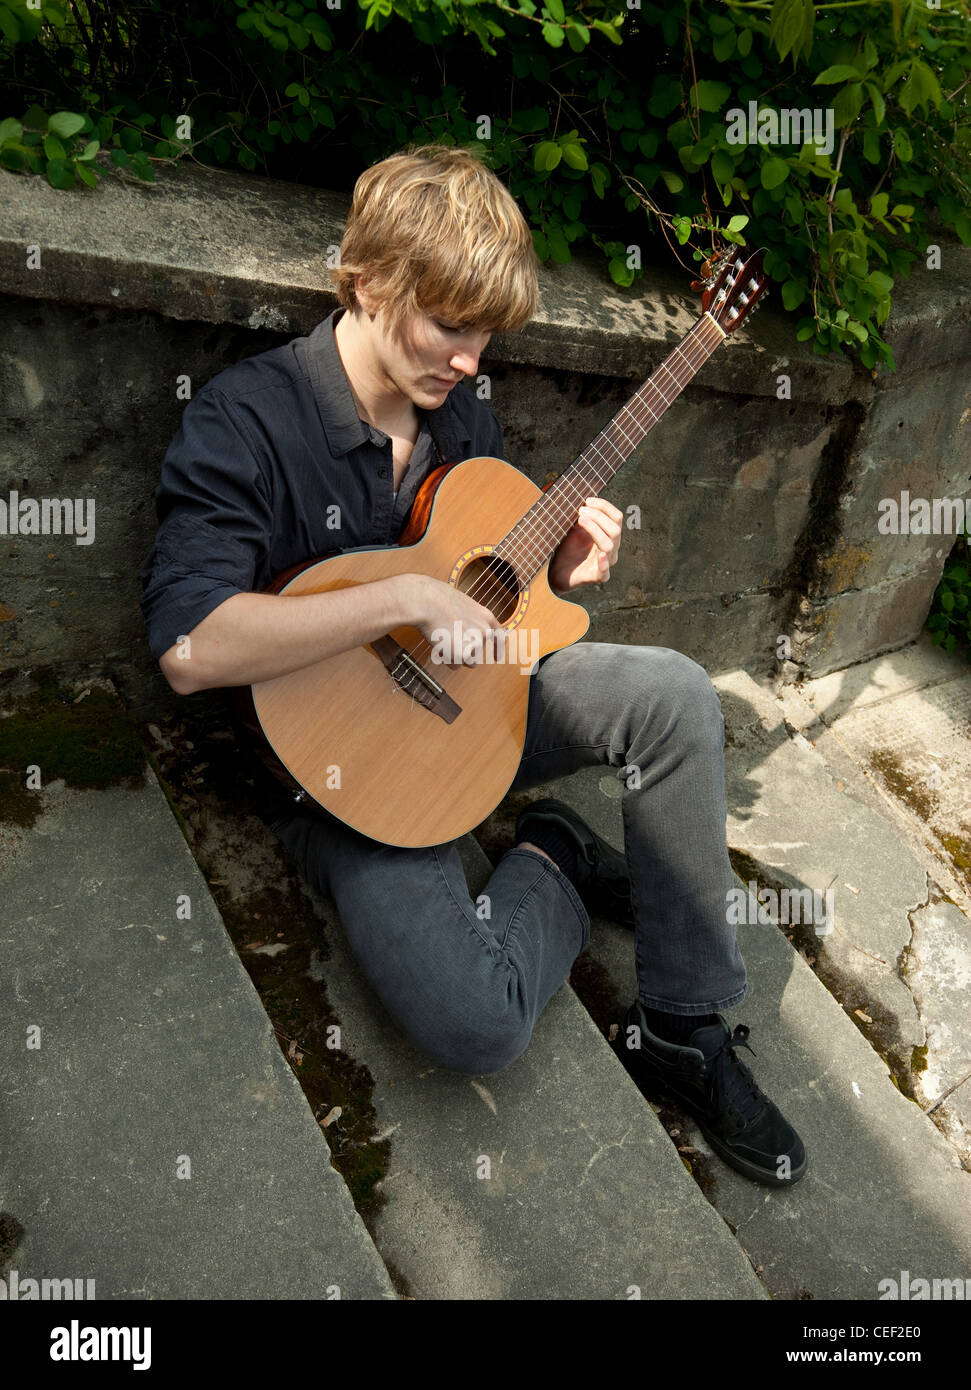 Young man sitting on old cement stairway, playing a classical guitar. - Stock Image